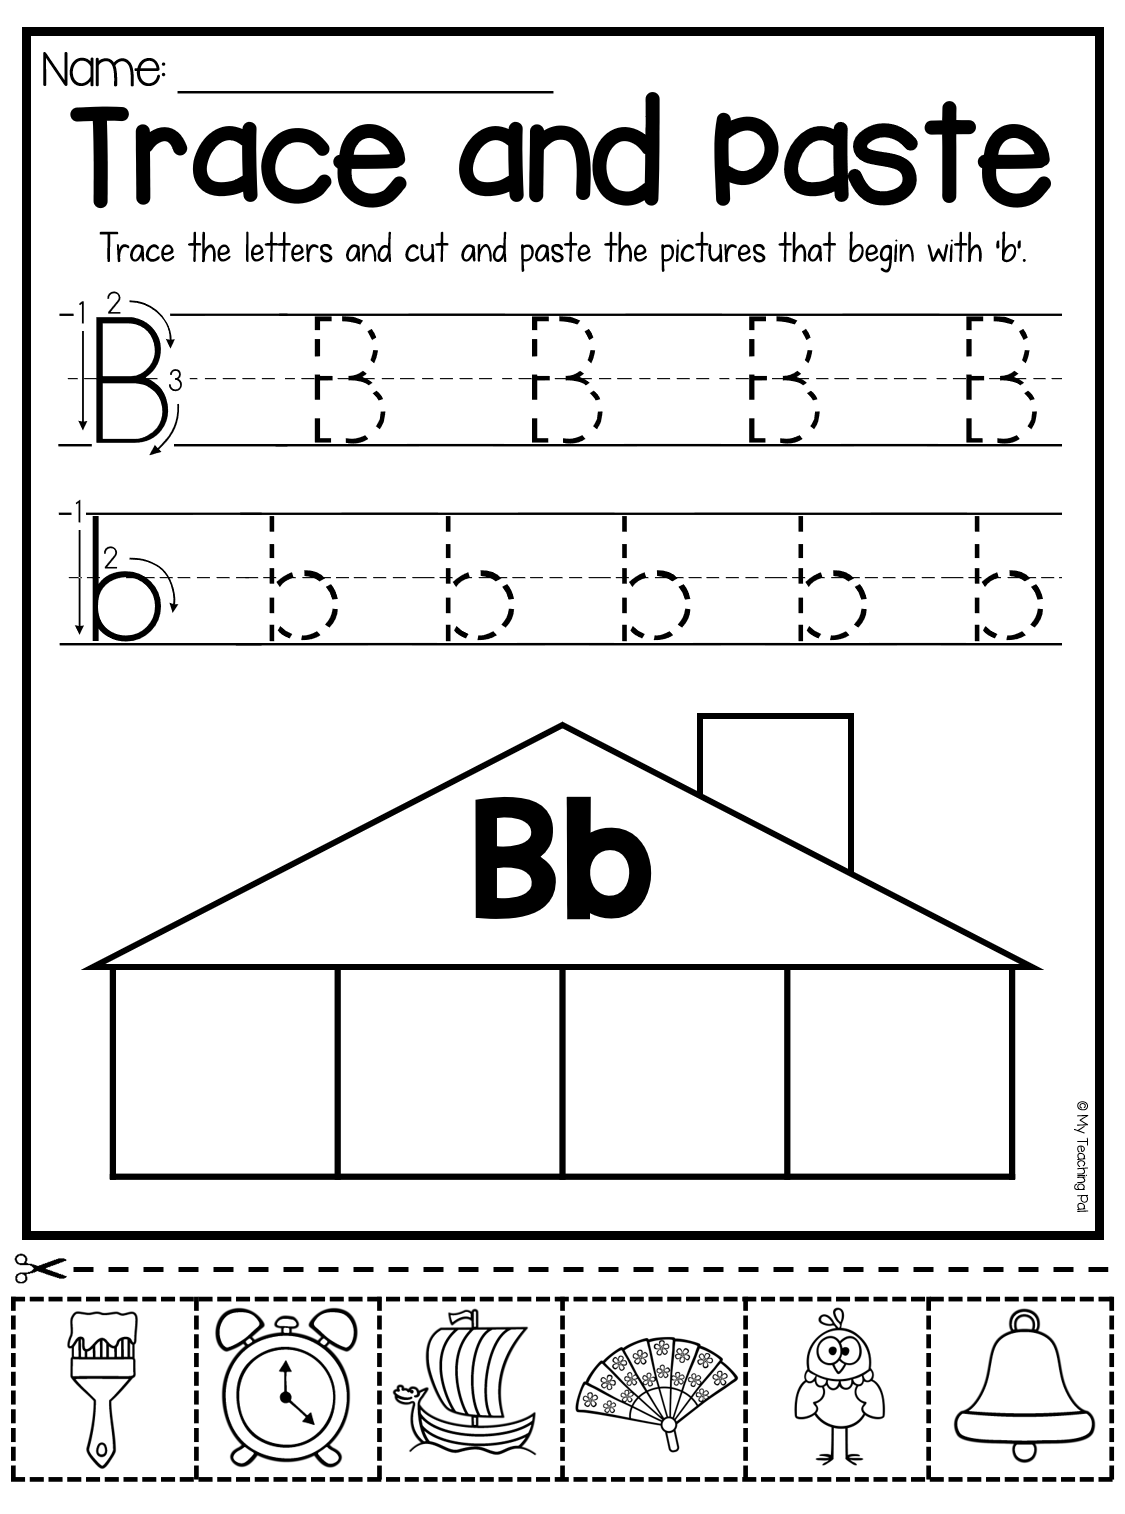 Beginning Sounds Worksheets Trace And Paste Lower Case Letters